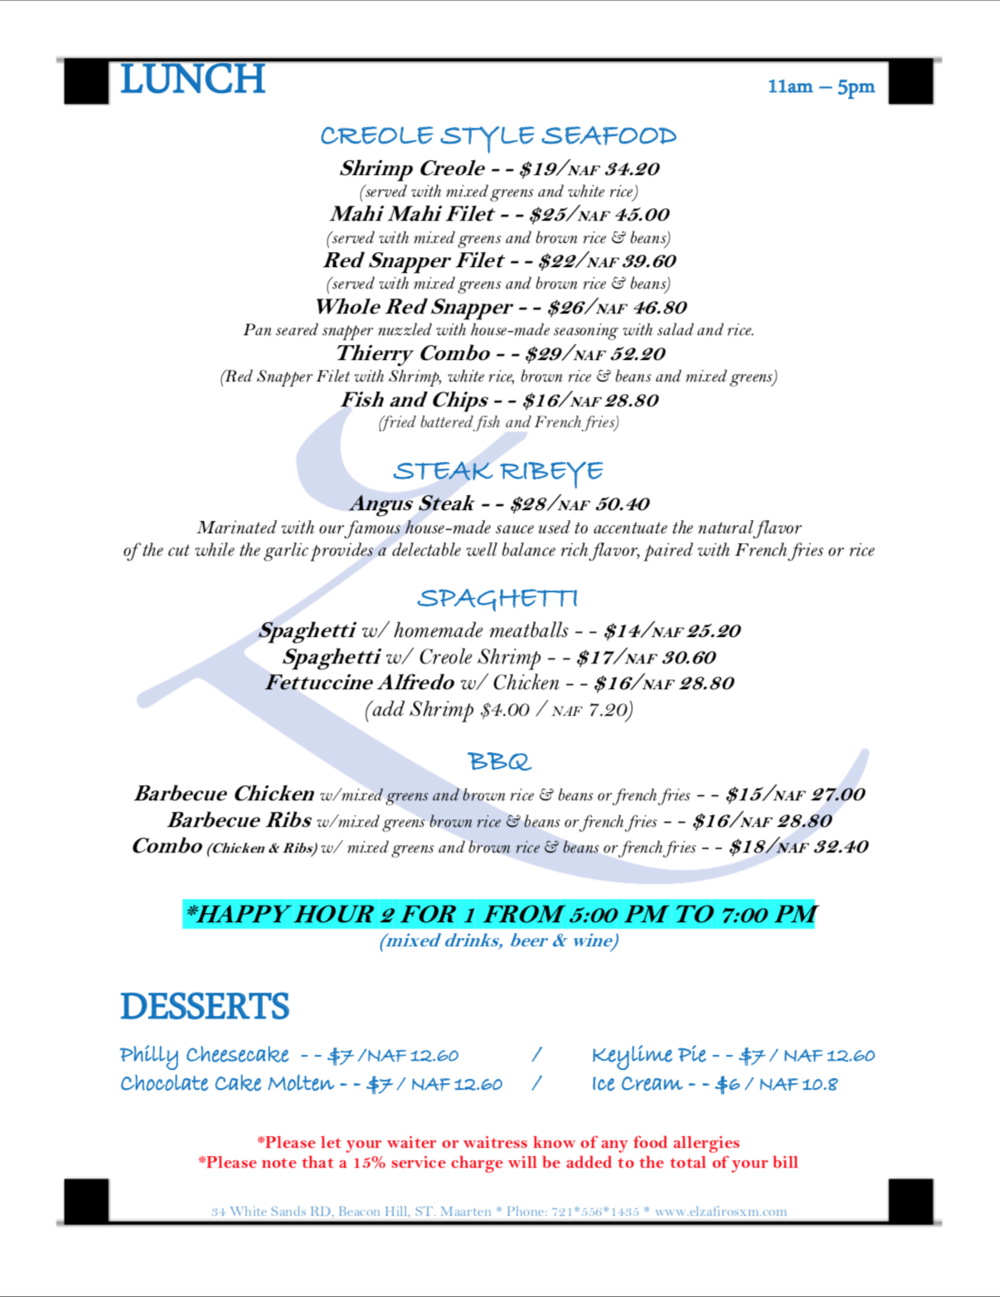 Click to view Full lunch menu